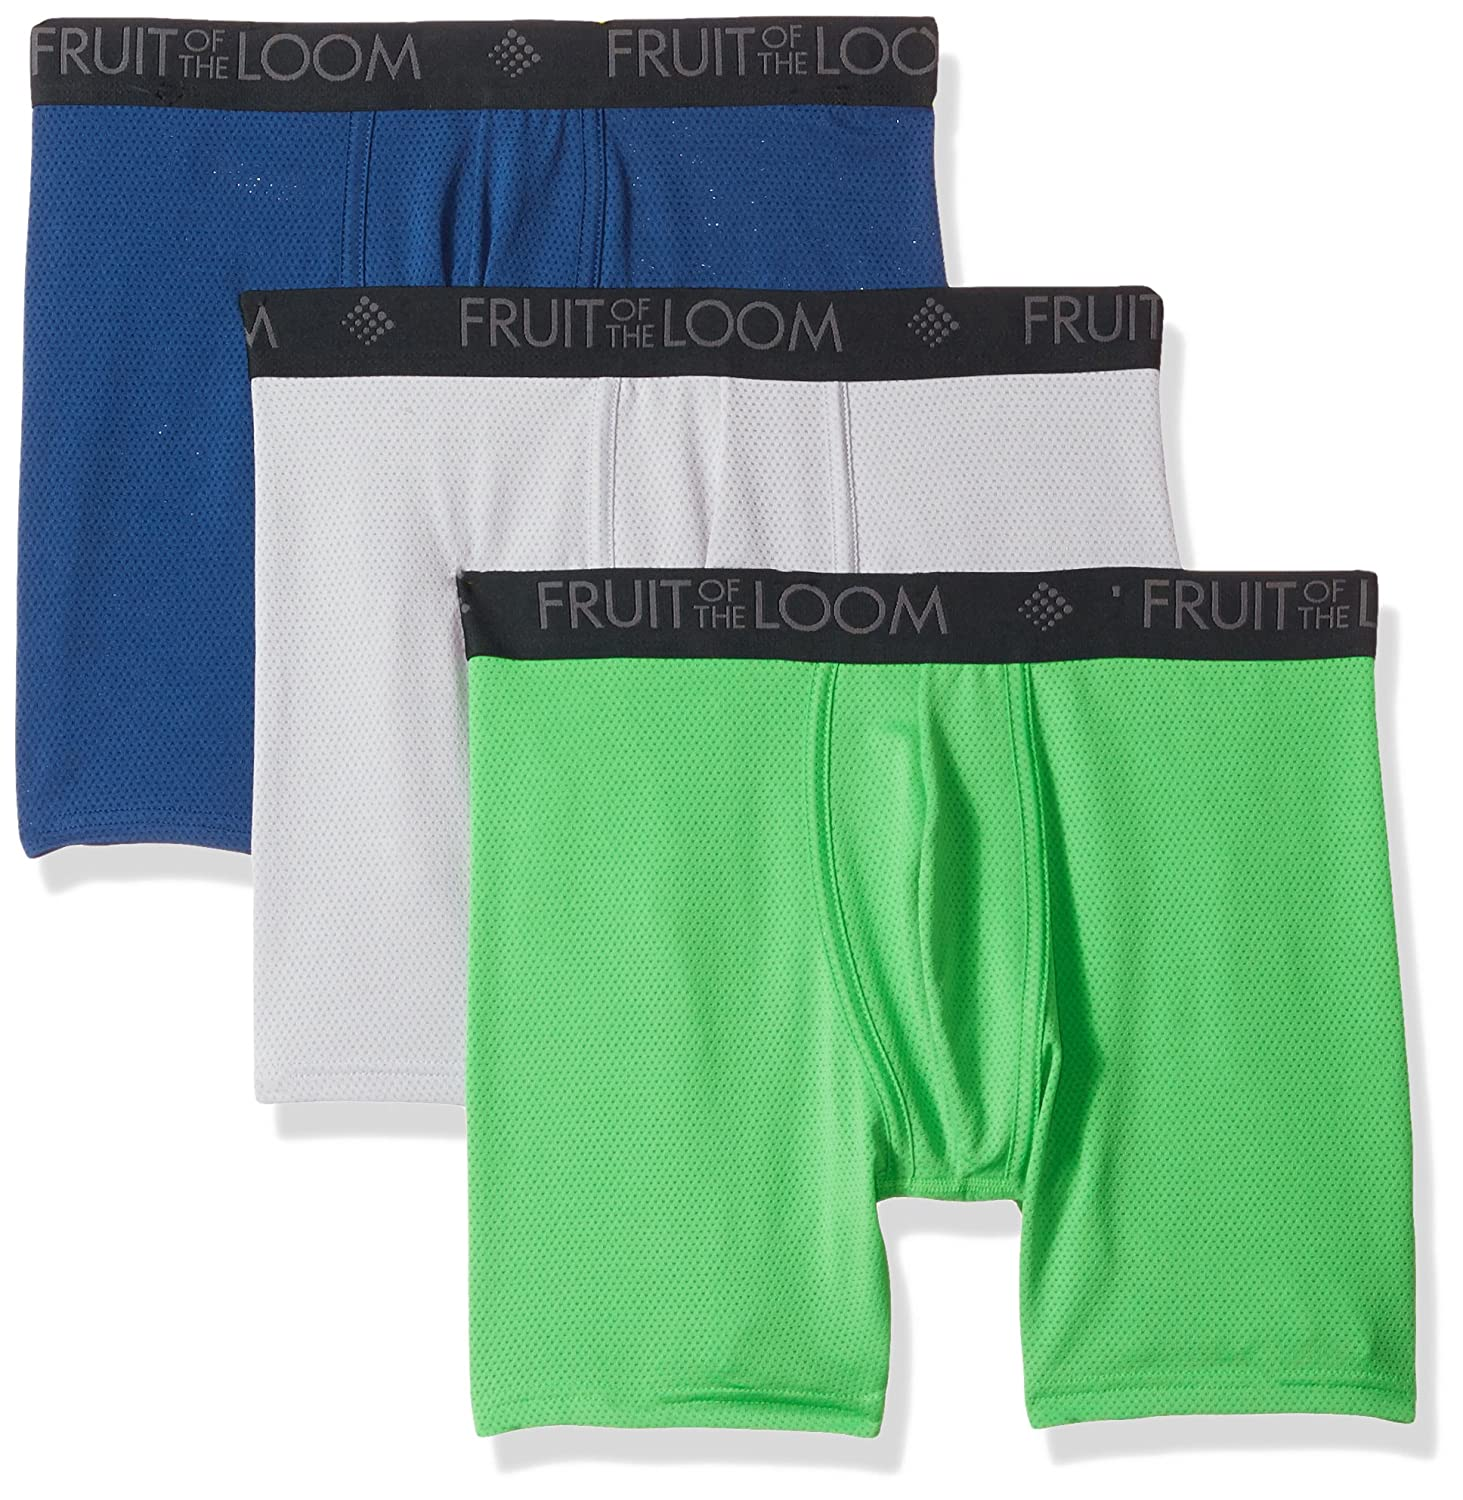 Fruit of the Loom Men's 3-Pack Breathable Lightweight Micromesh Boxer Brief FTL-BW3BB7C